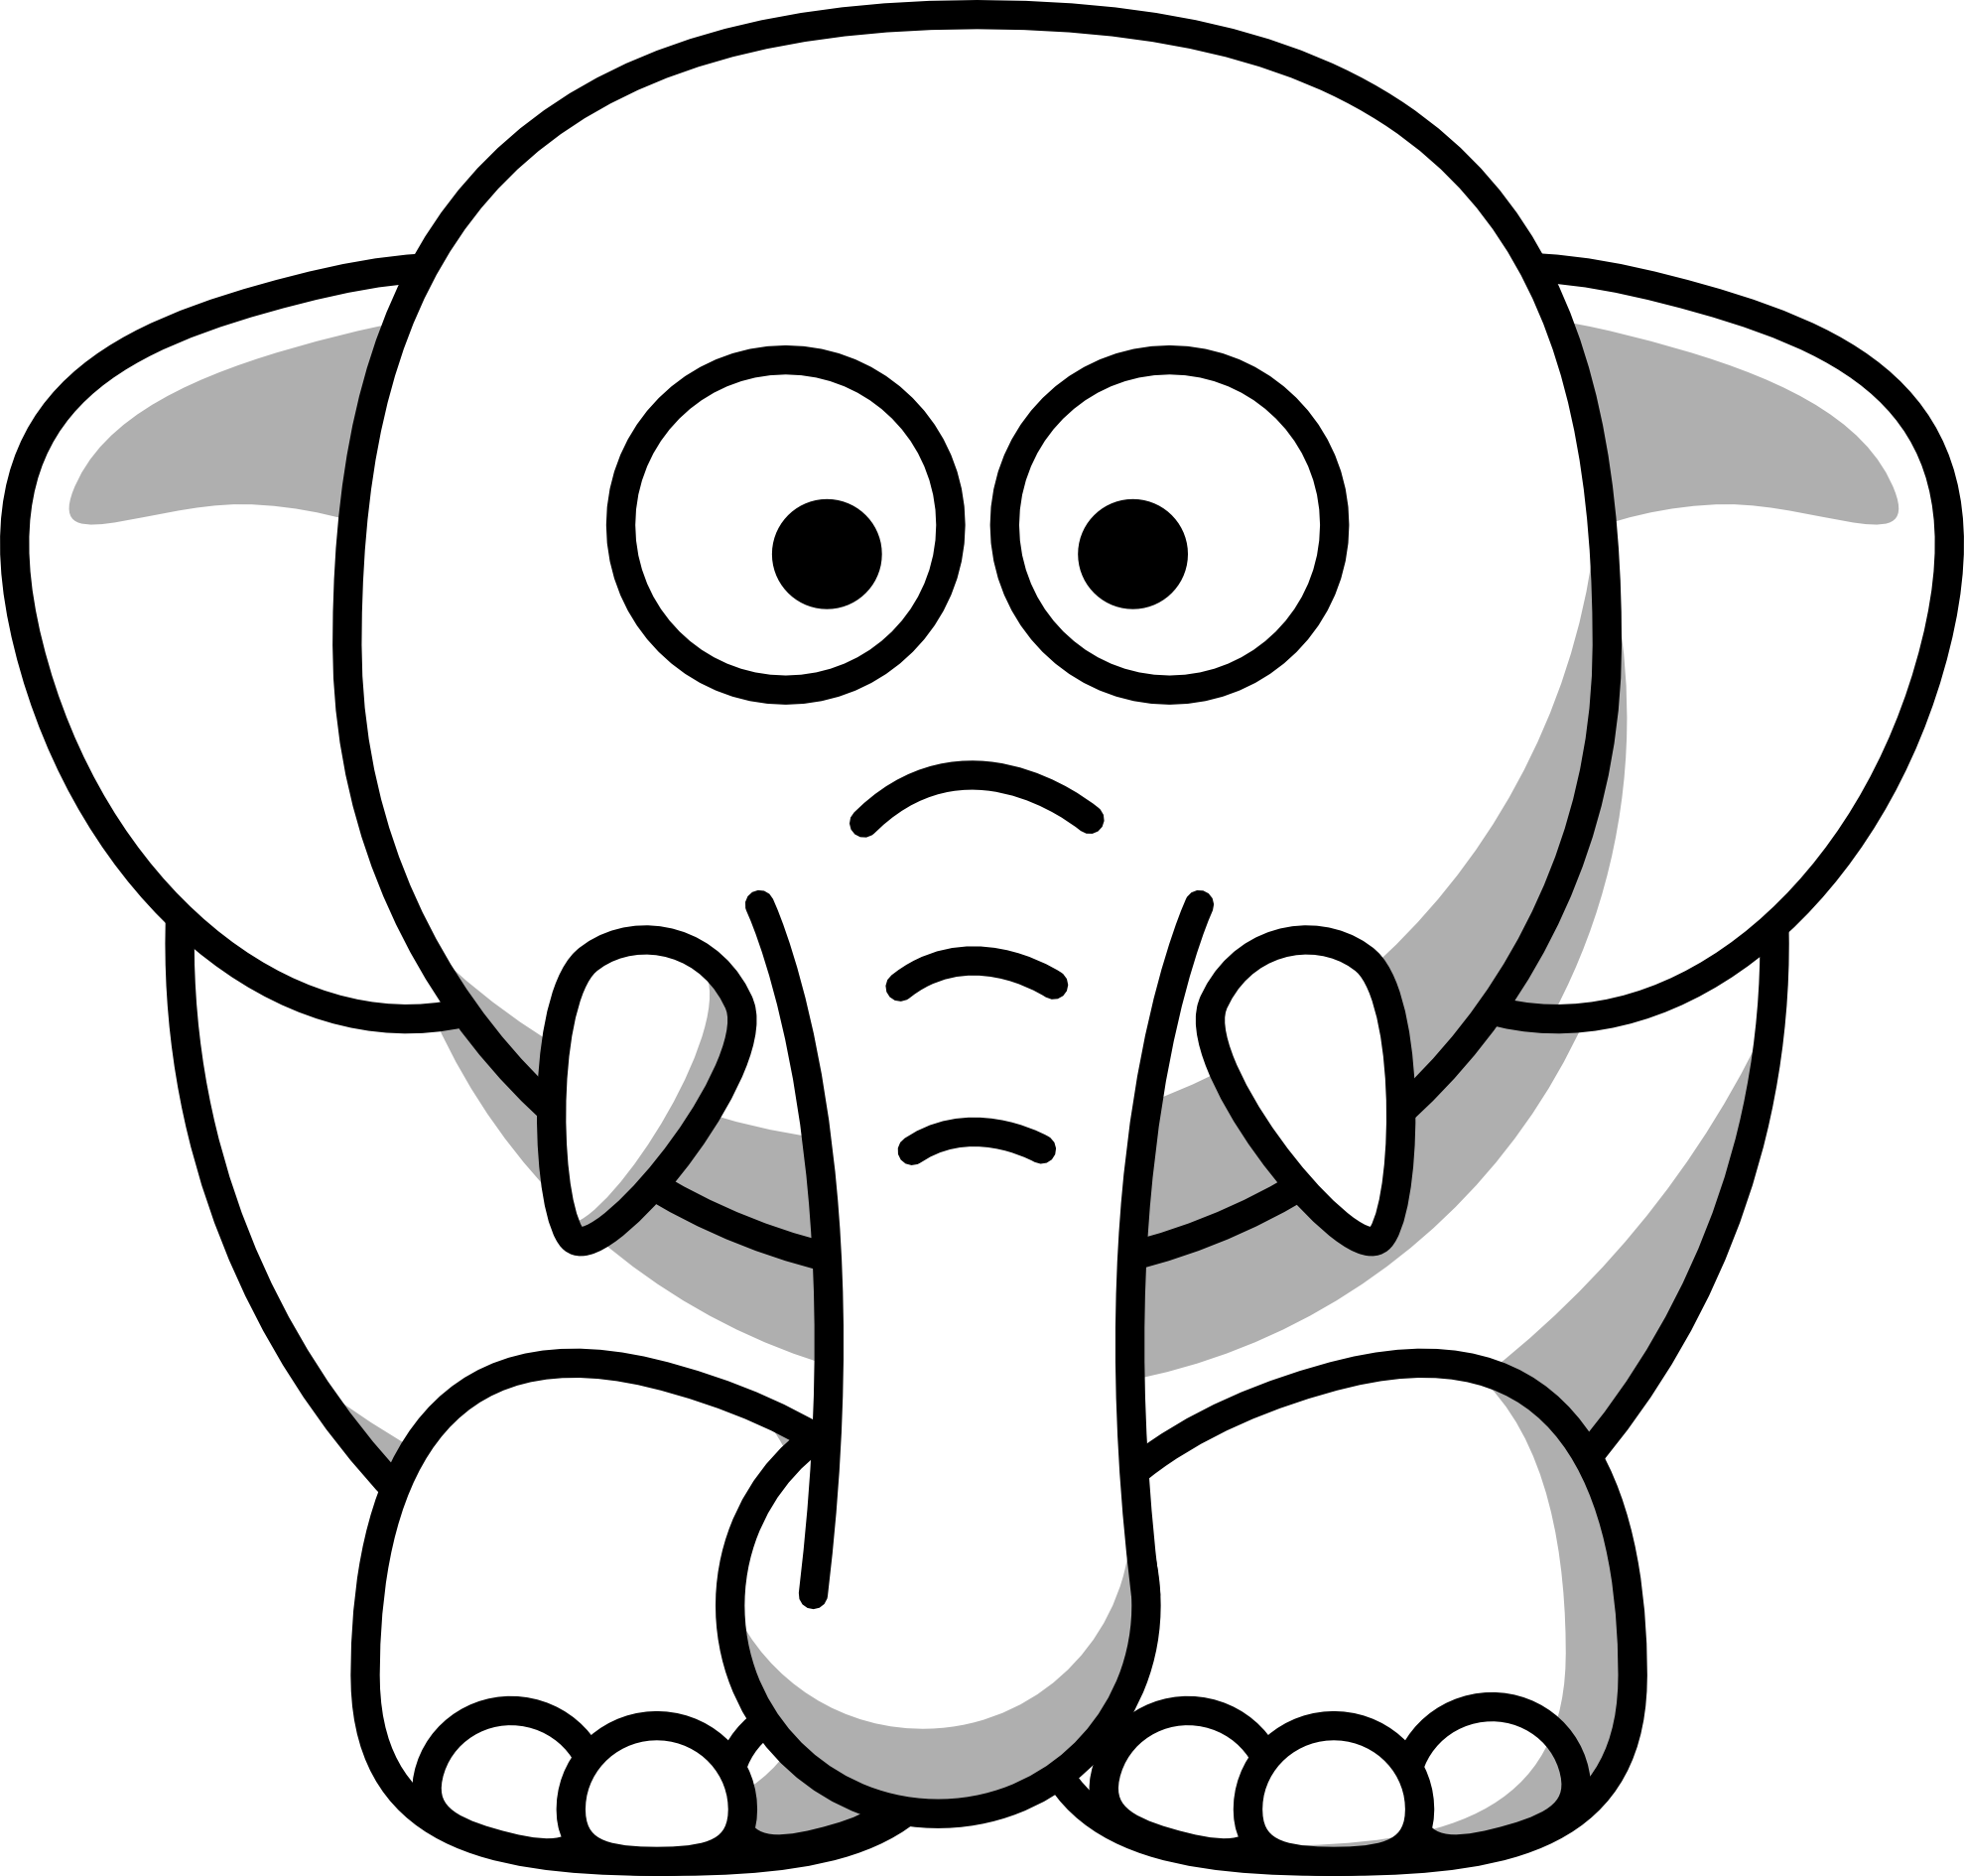 Free White Elephant Clipart, Download Free Clip Art, Free.